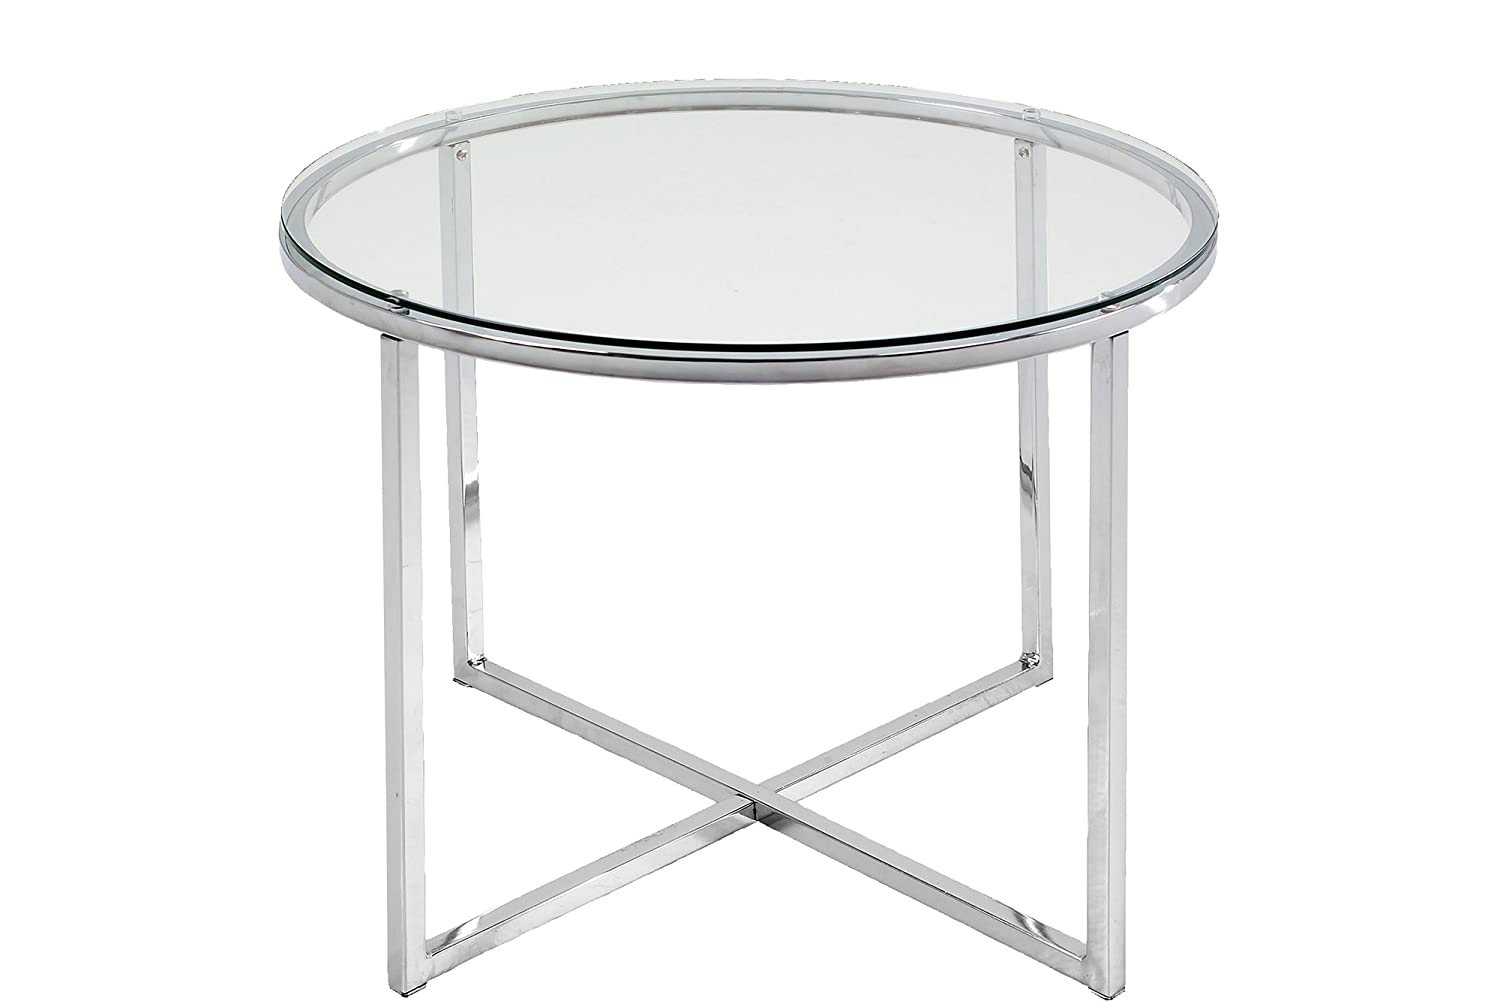 ABC Home Scandinavian Style Chrome Lamp Table, Silver ABC designs 0426862046